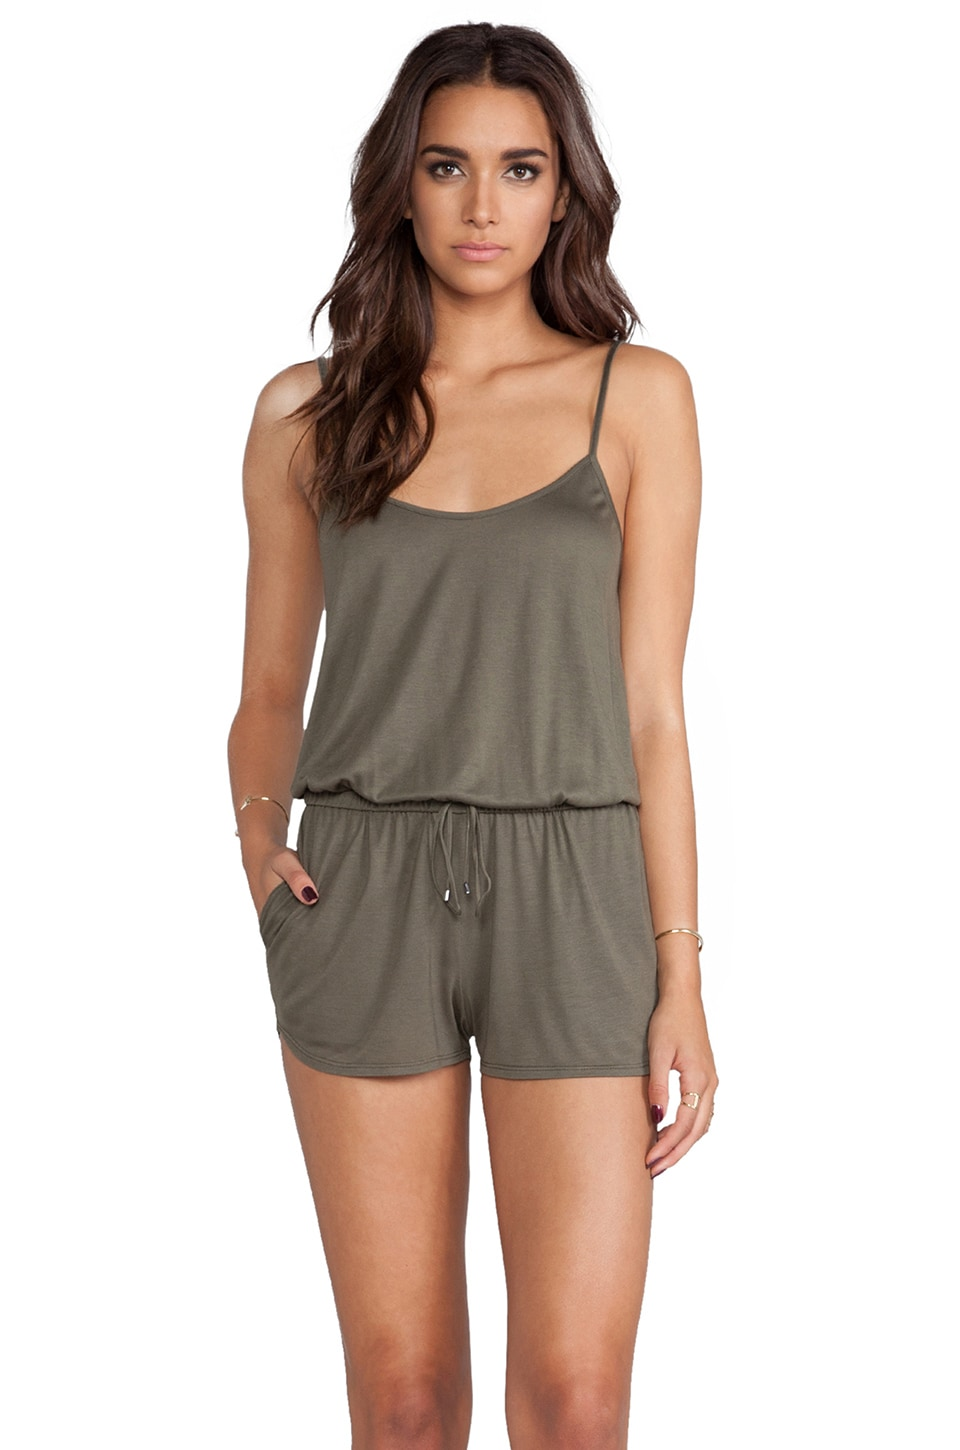 Haute Hippie Short Drawstring Onesie in Military